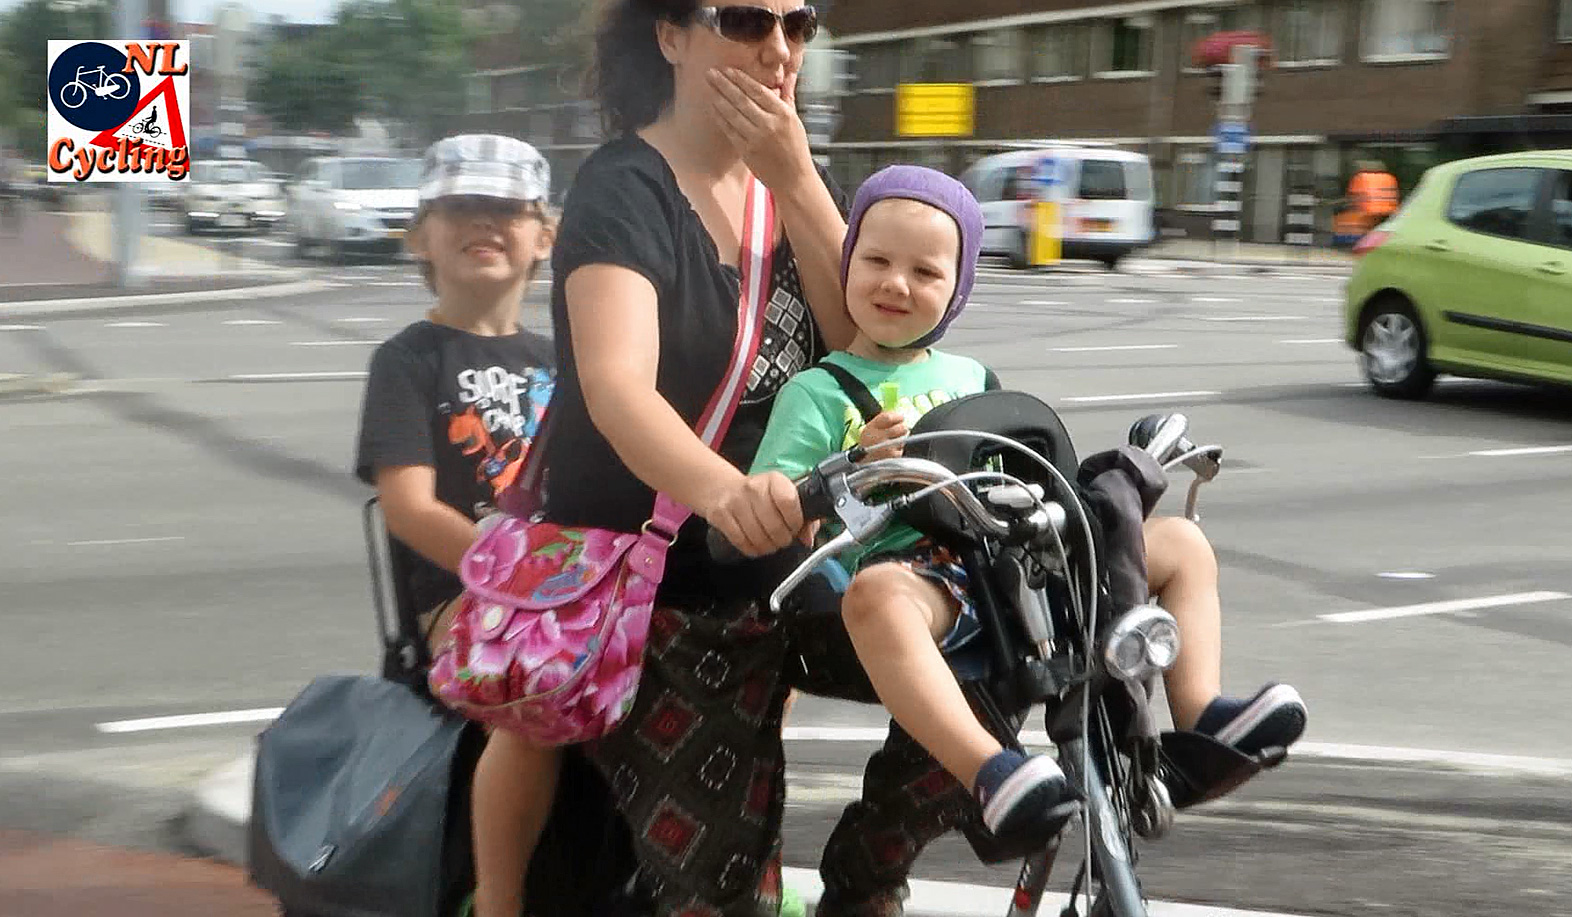 Baby chair on bike - This Mother Rides With Her Two Children The One In The Front Is Getting A Bit Big For The Seat A New Solution To Transport These Two Will Have To Be Found